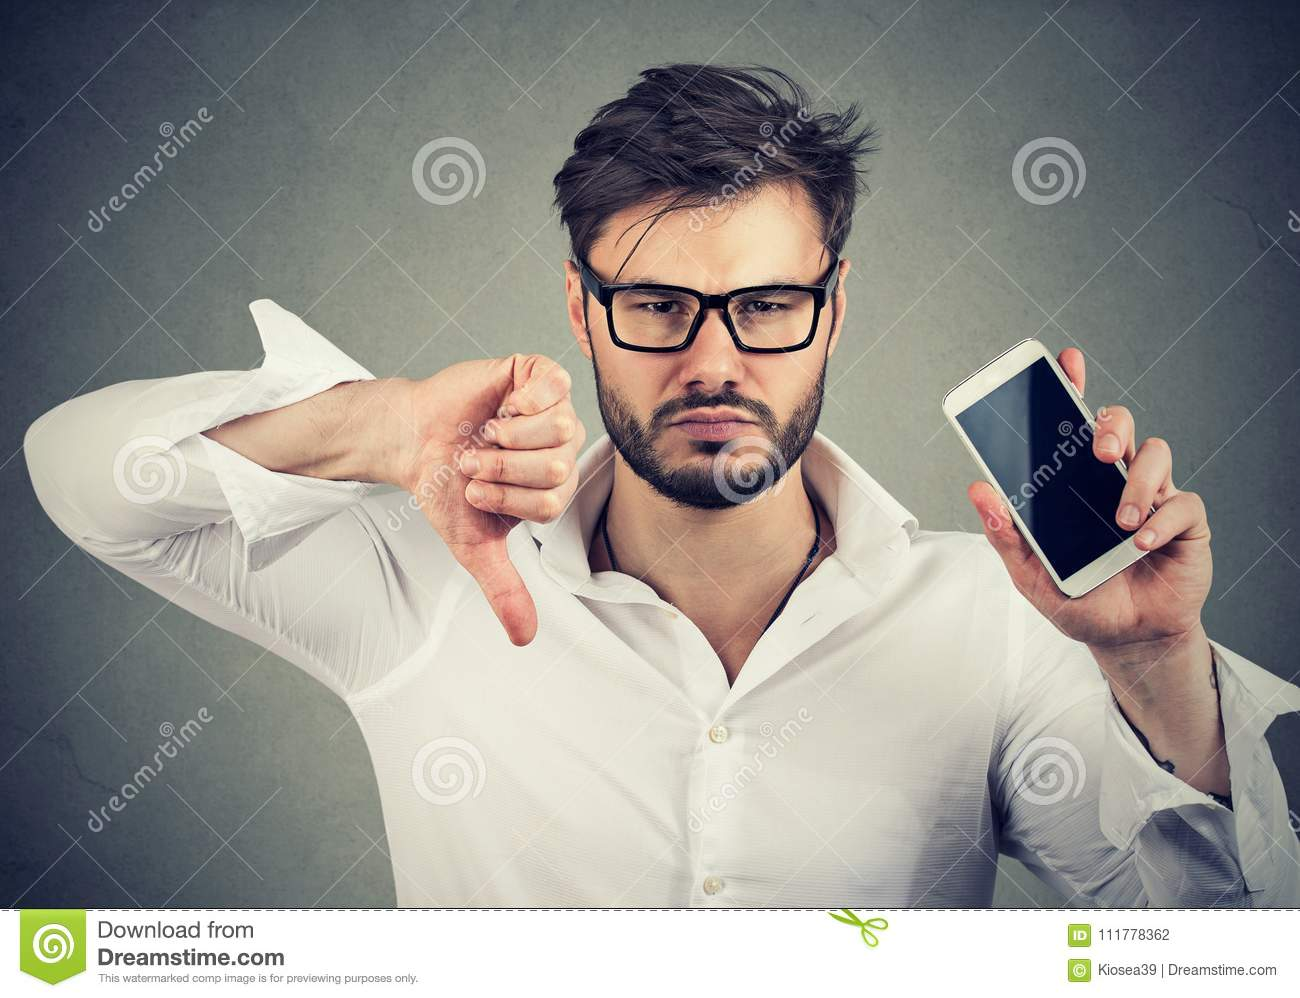 Man dissatisfied with quality of gadget mobile phone